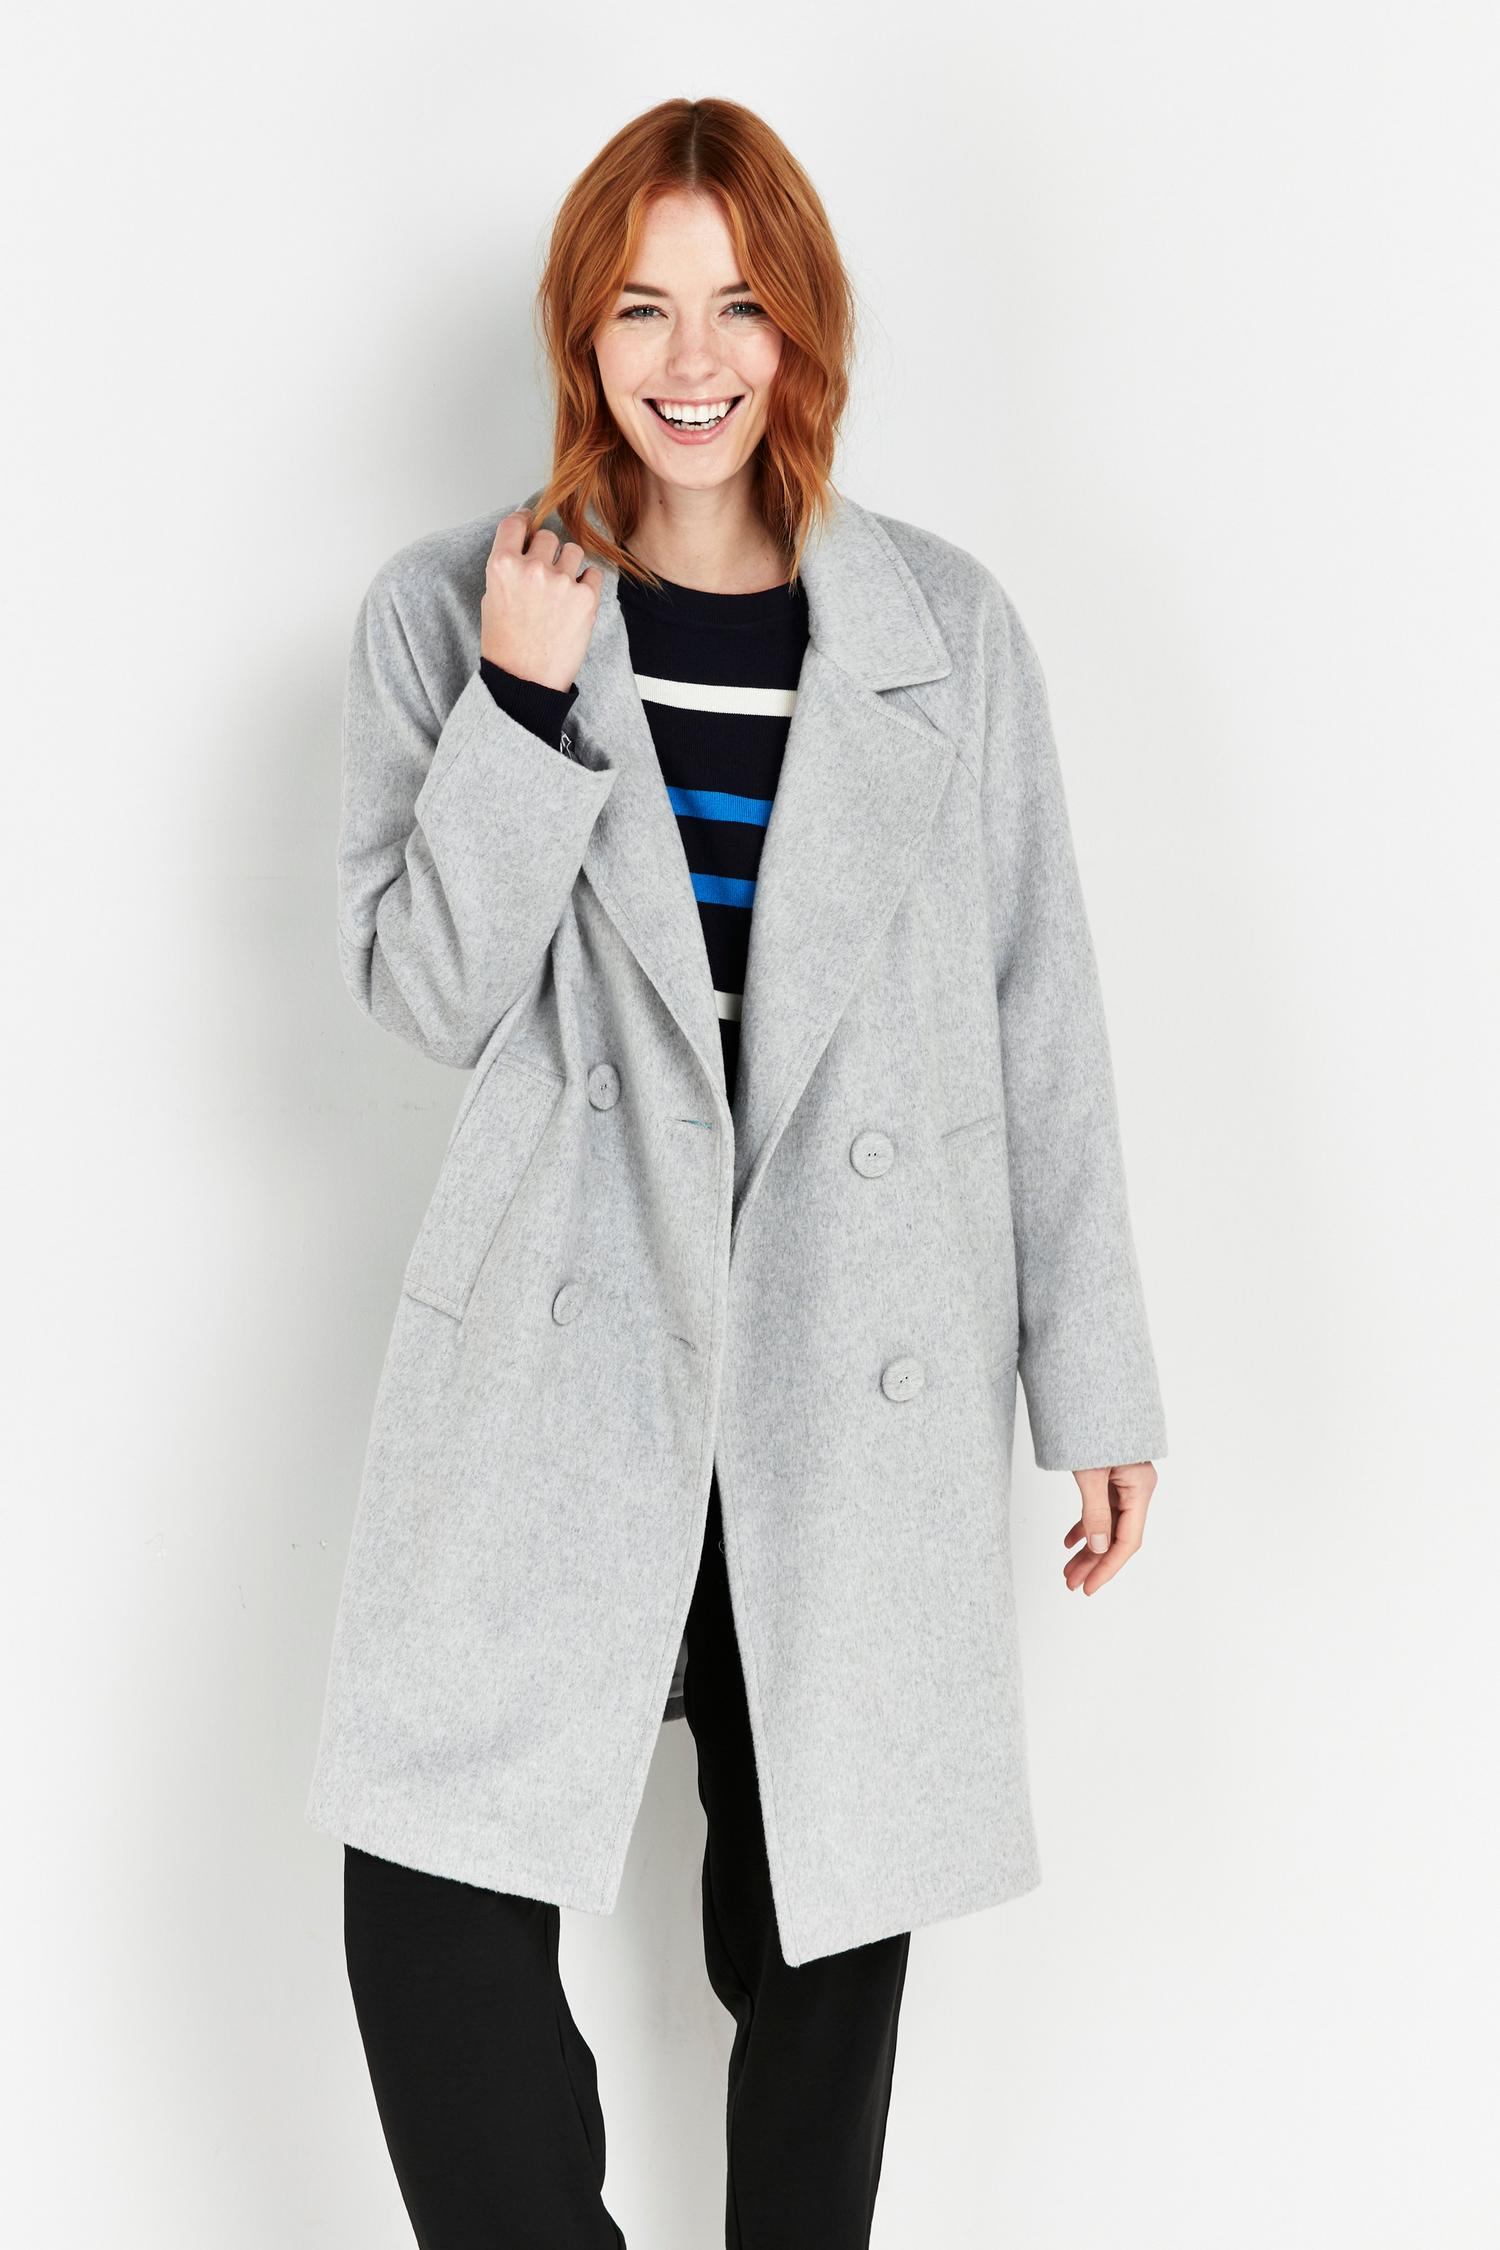 131 TALL Grey Double Breasted Coat image number 4